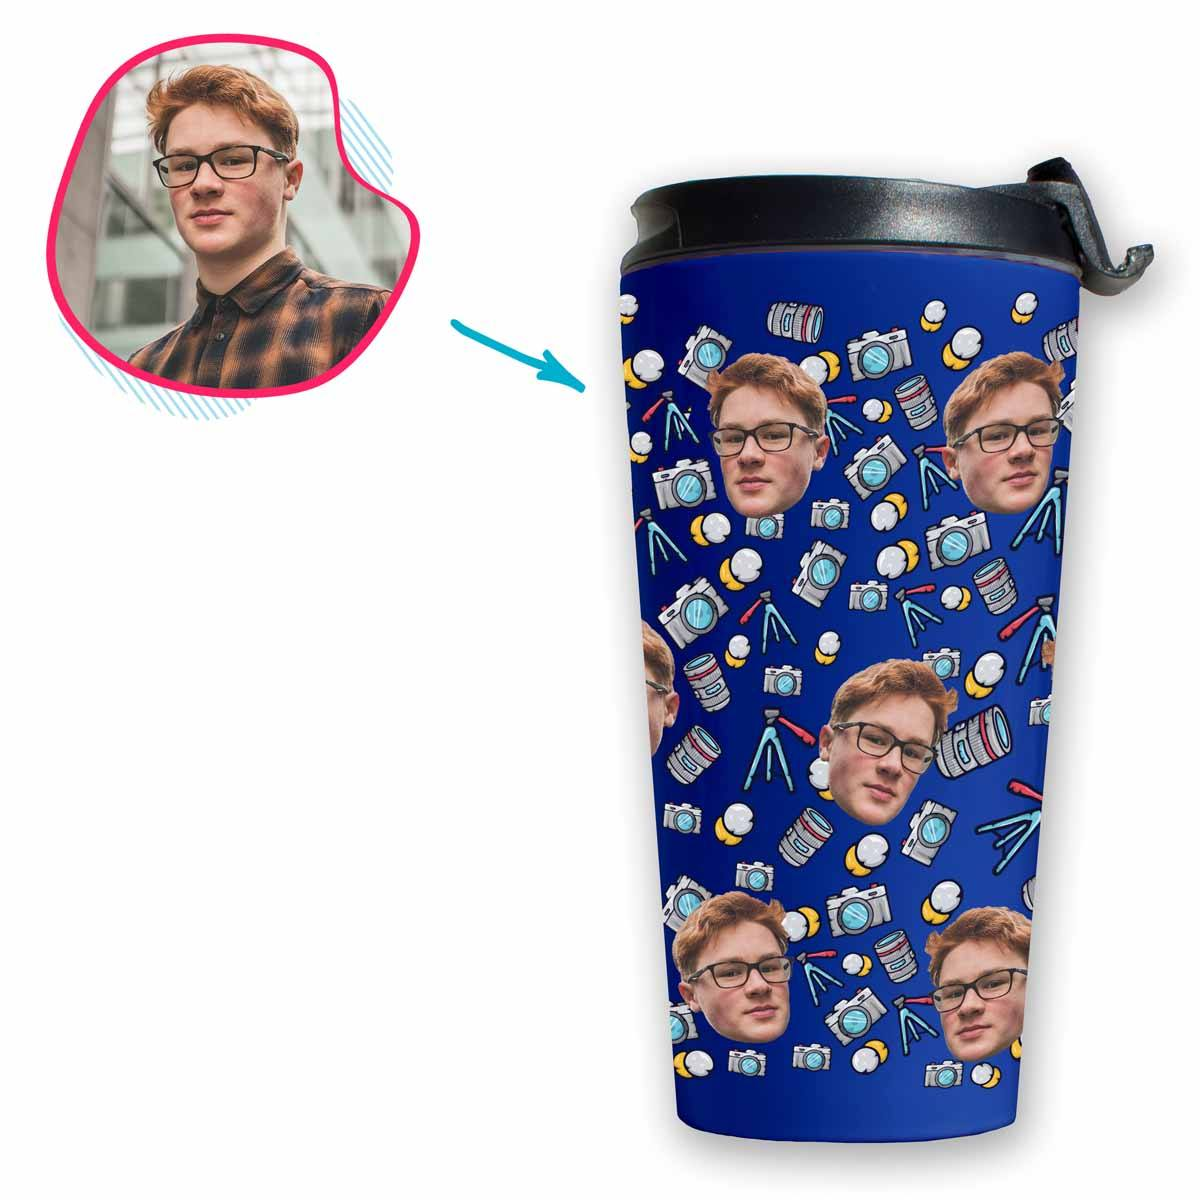 darkblue Photography travel mug personalized with photo of face printed on it